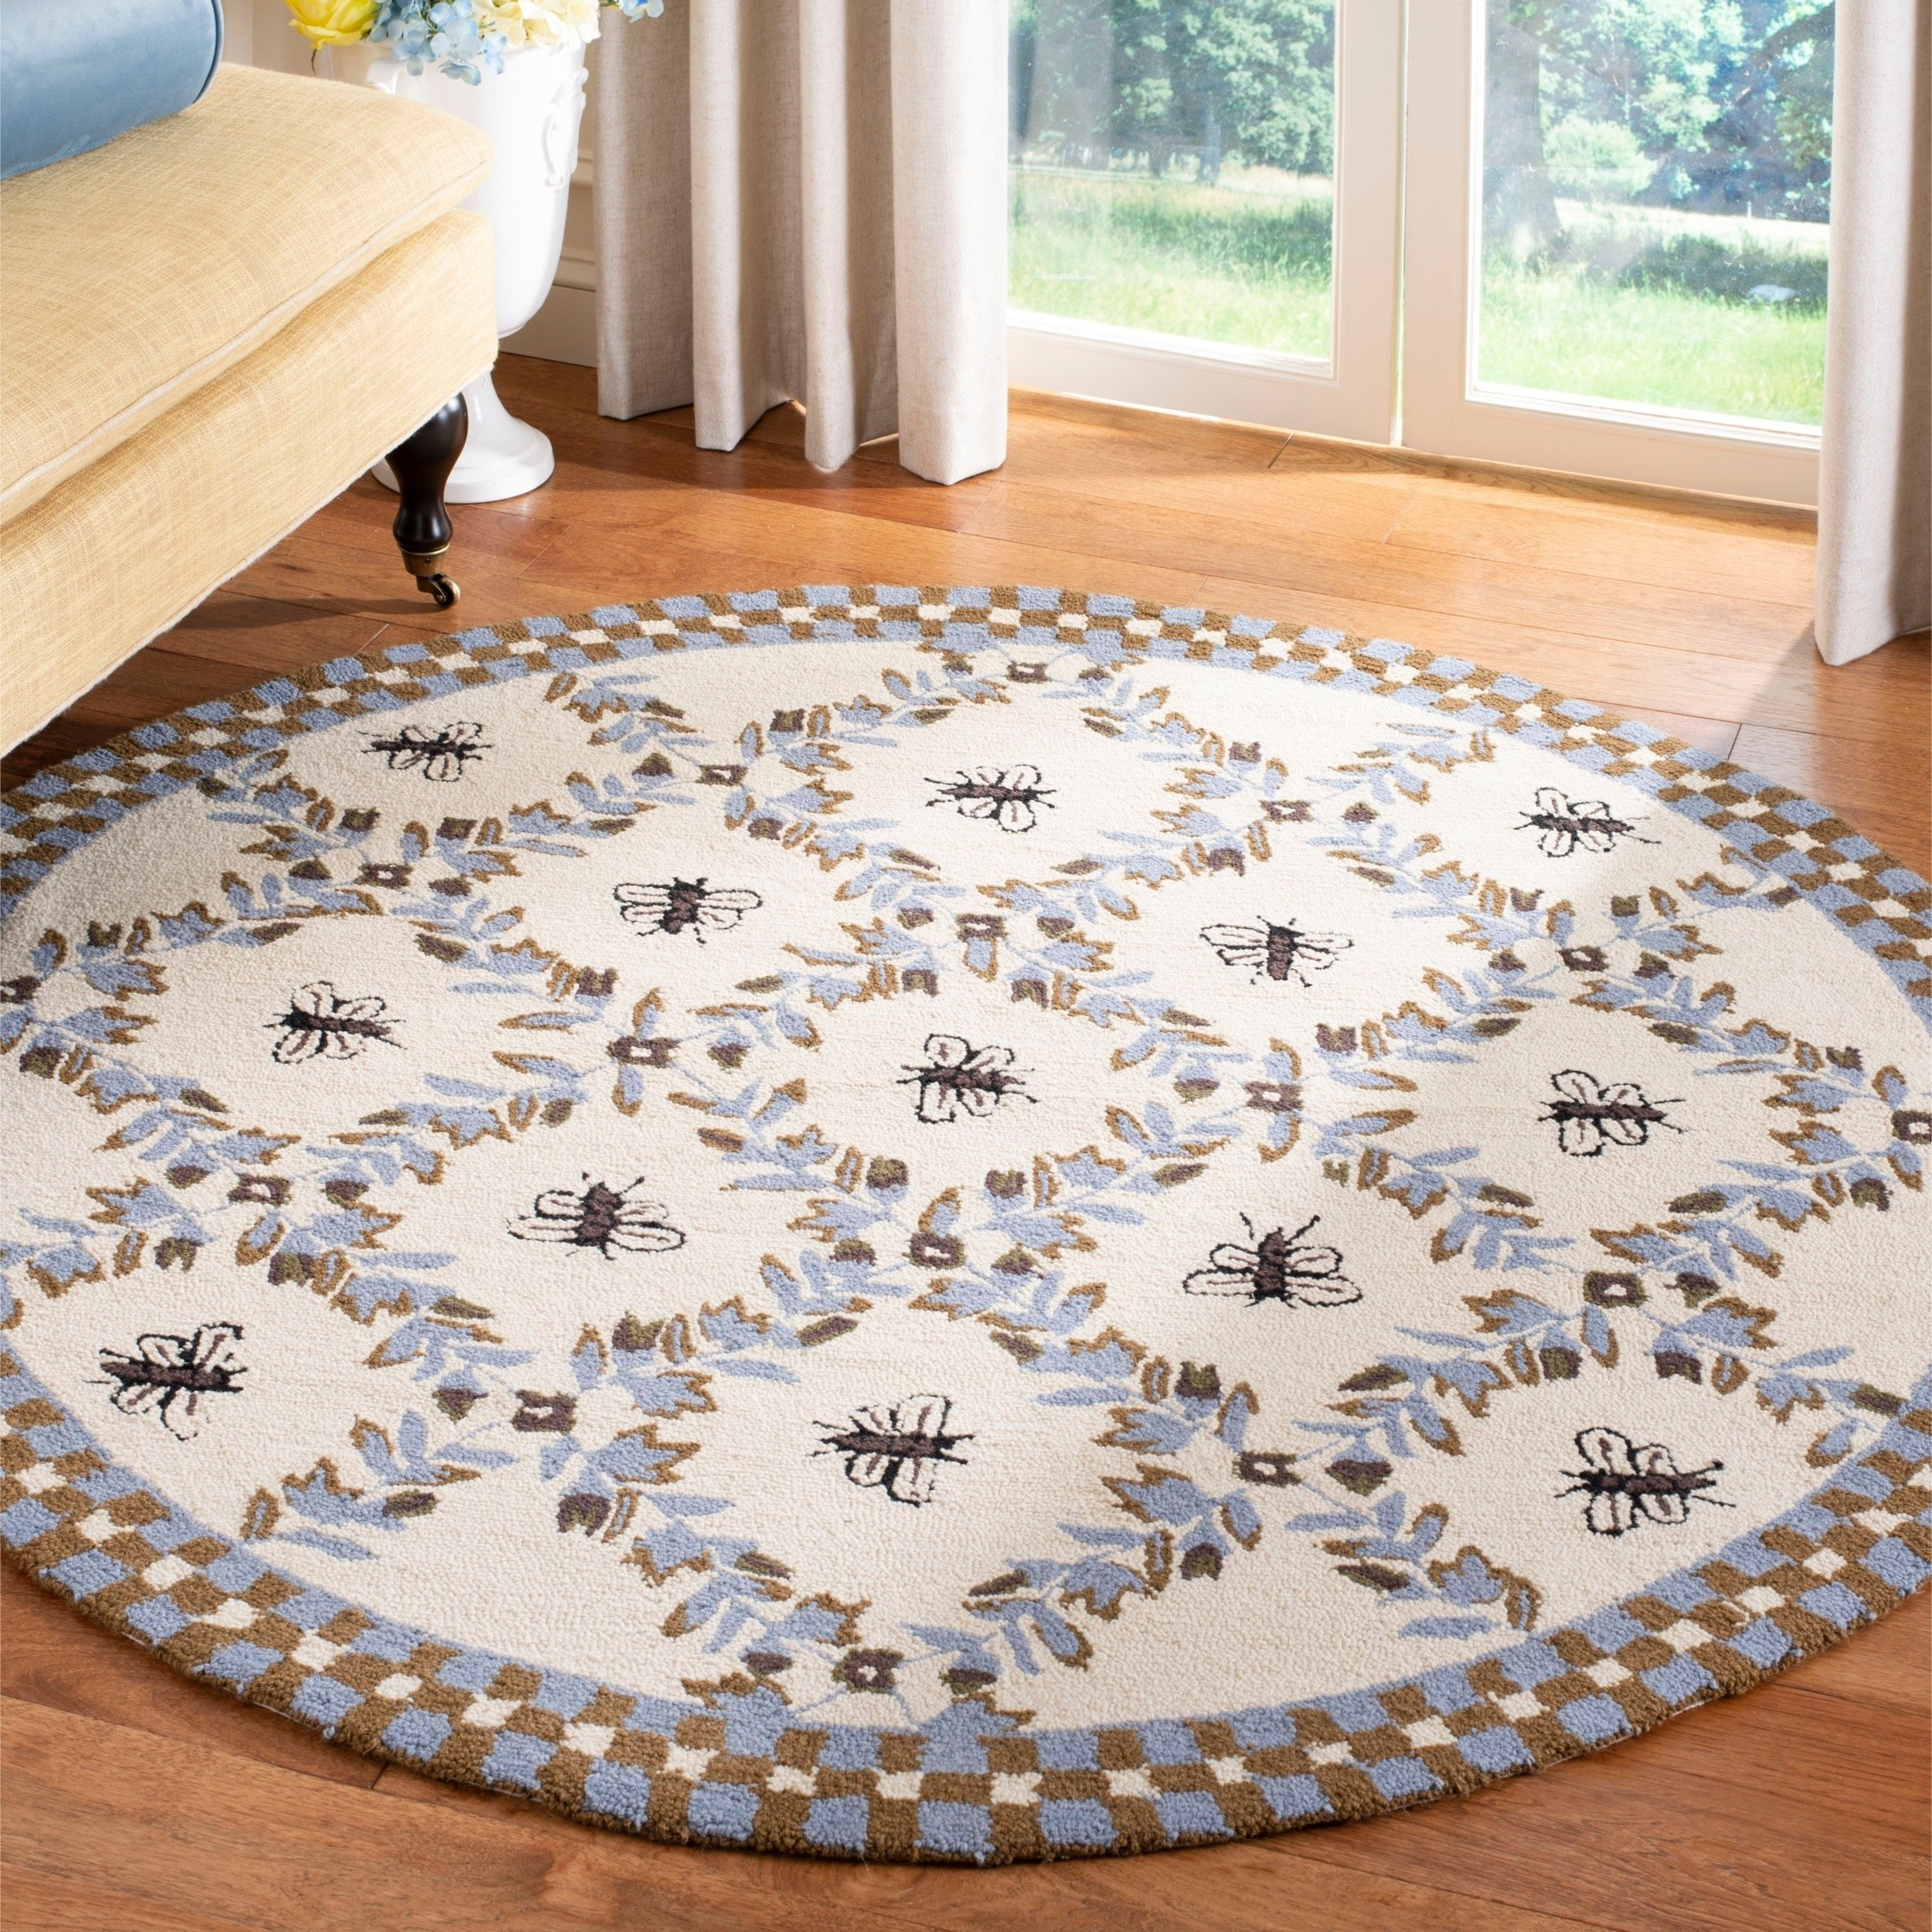 Safavieh Hand Hooked Bees Ivory Blue Wool Rug 8 X 8 Round 8